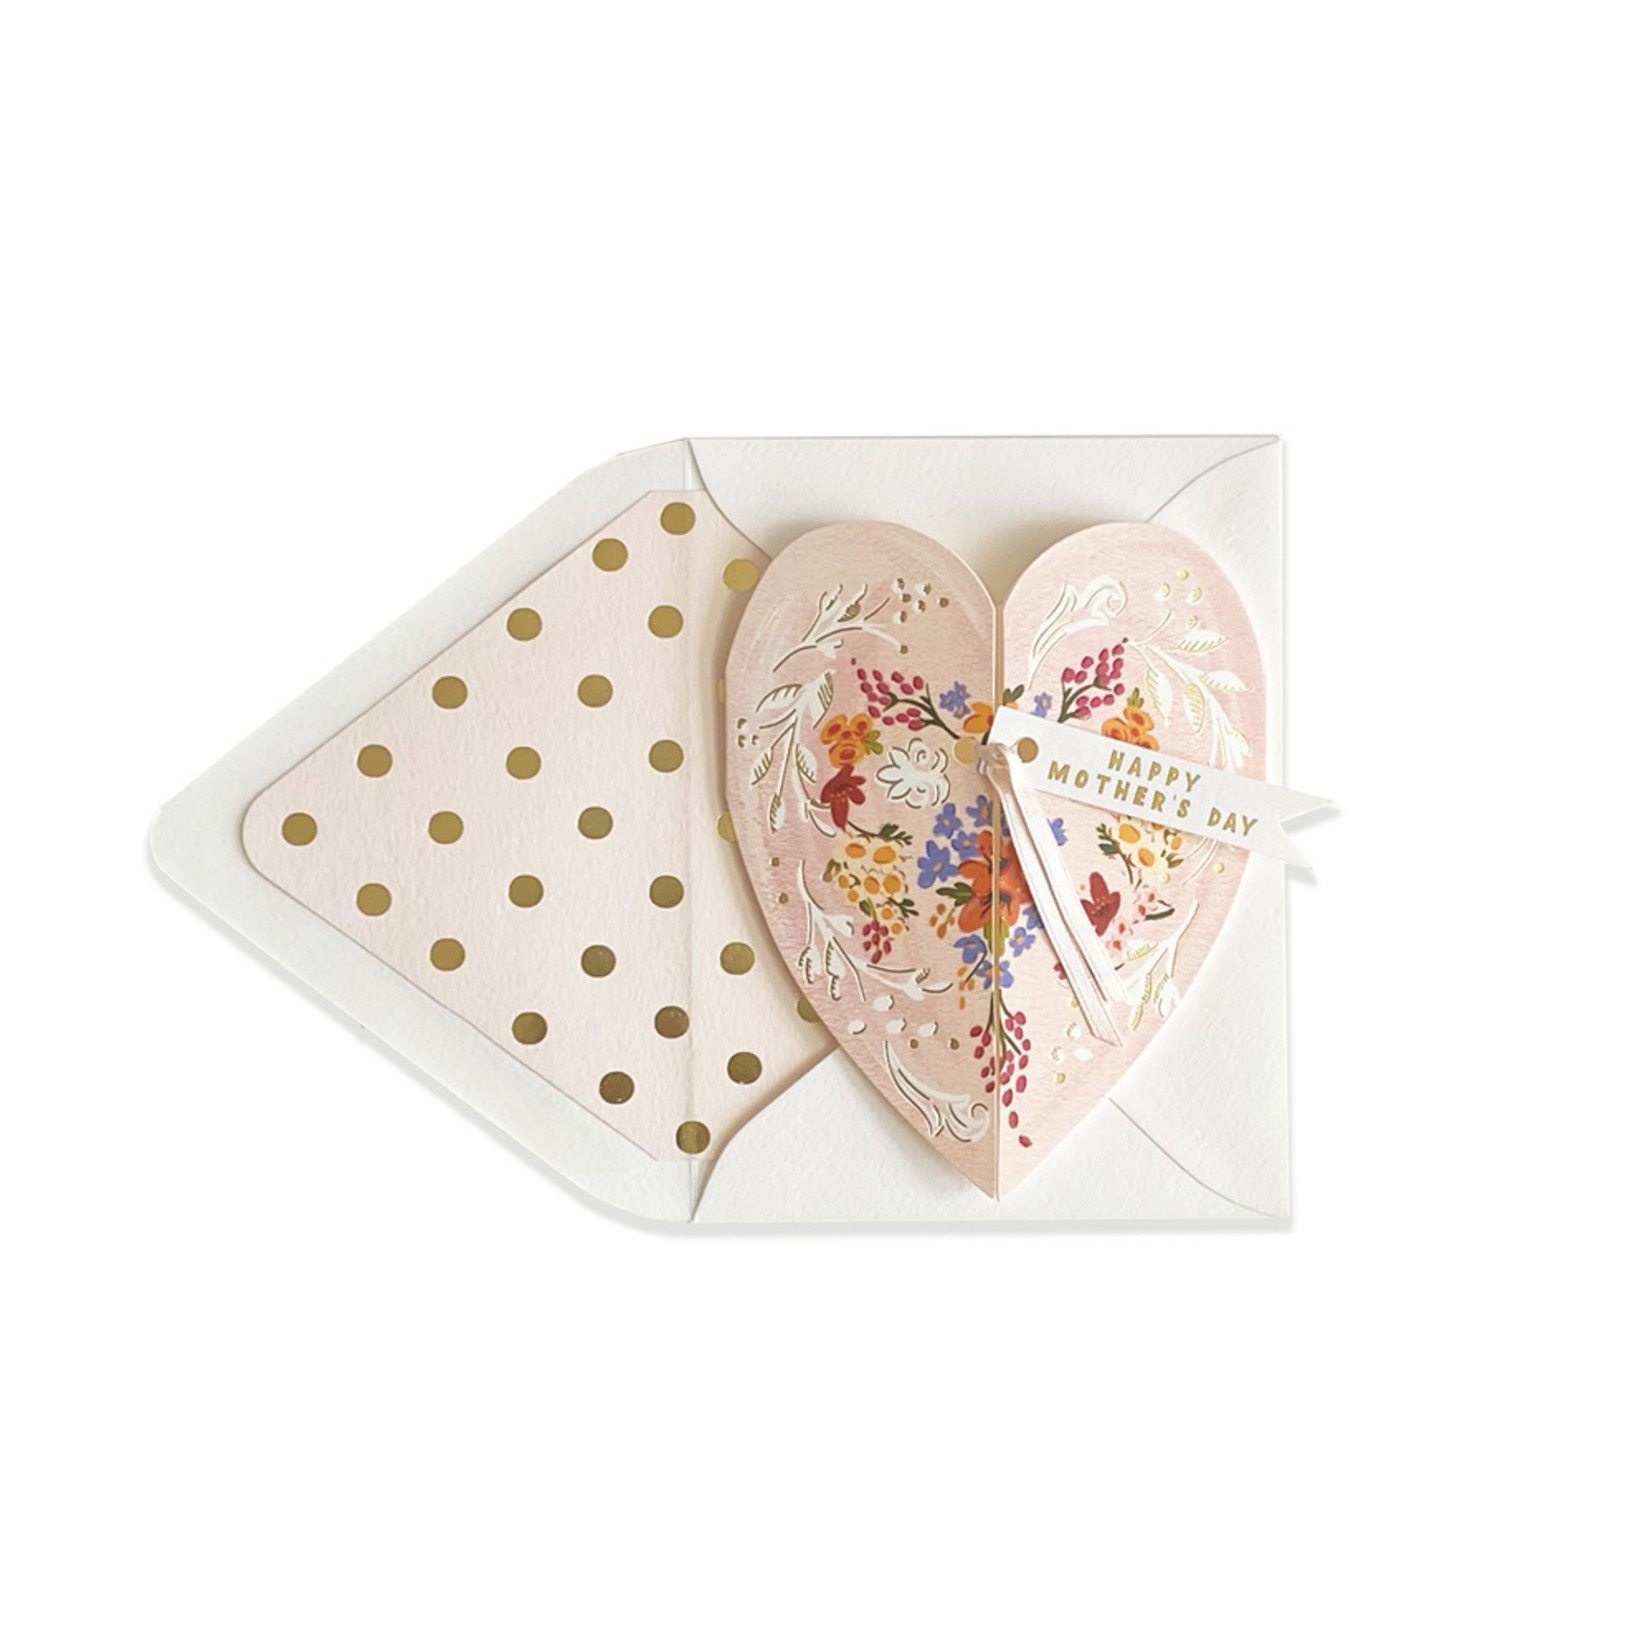 Happy Mother's Day Folding Heart